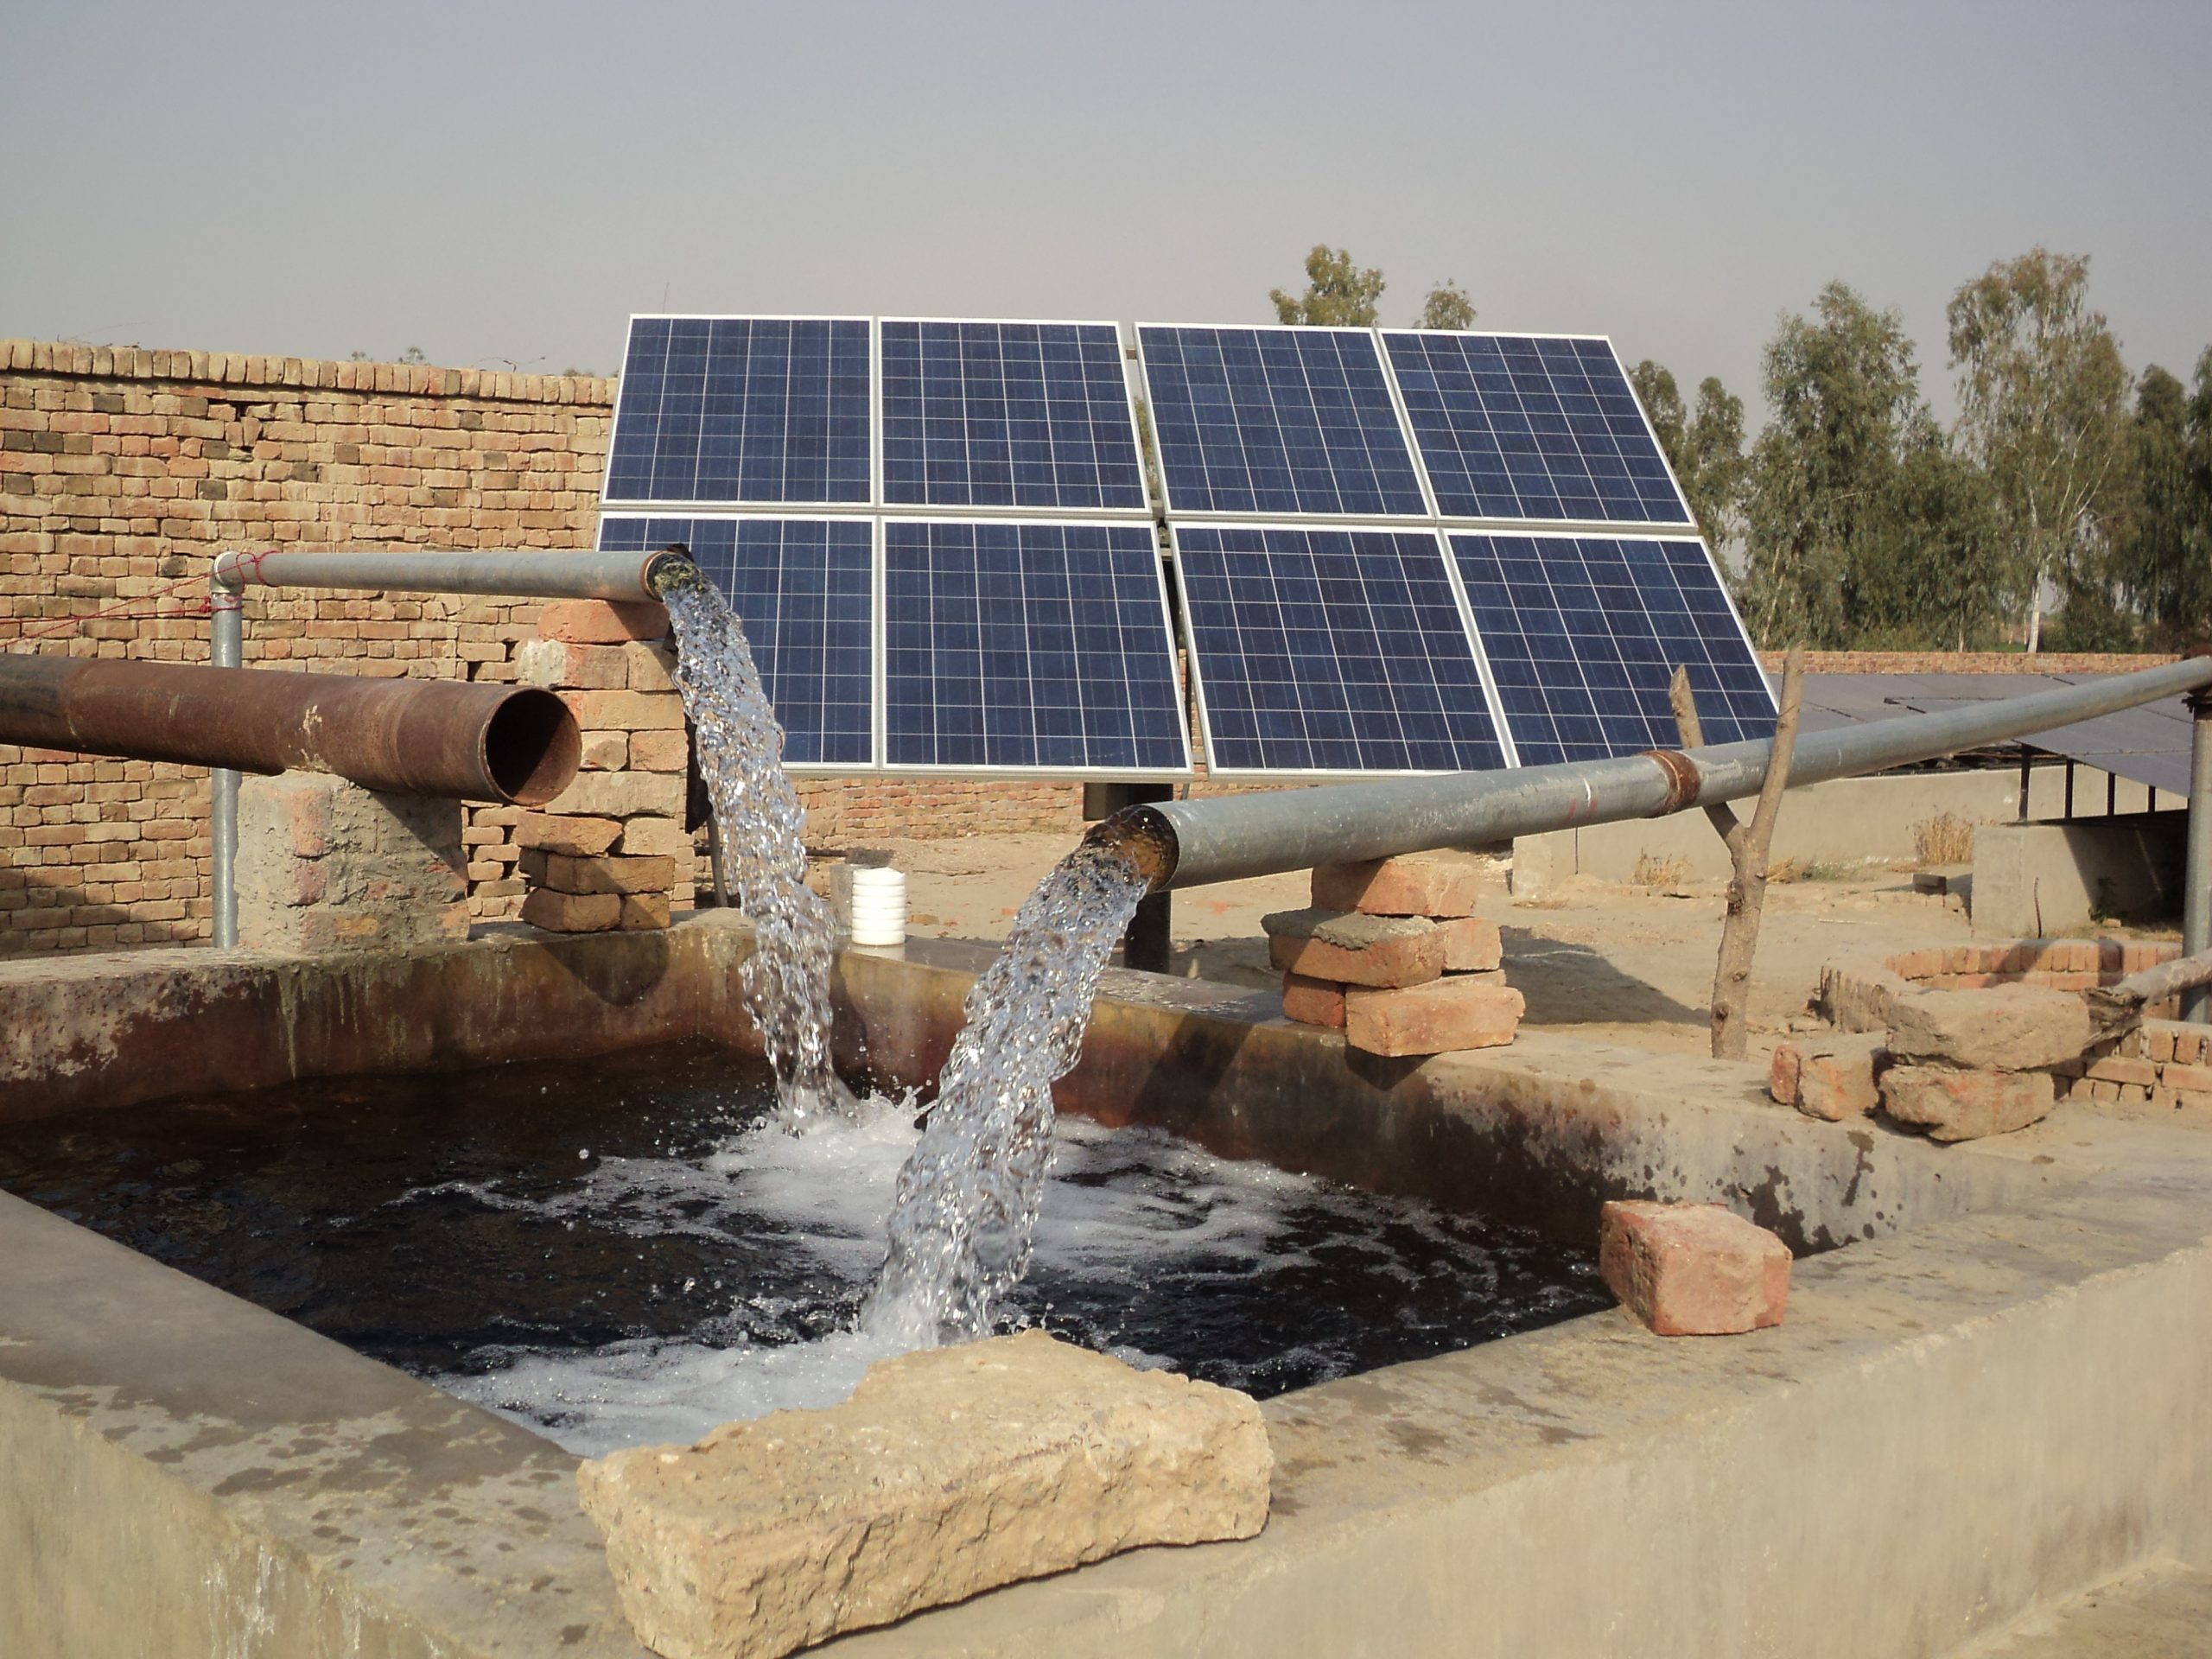 Supply & Installation Of Solar Submersible Pumps For AED At Tarnab Peshawar, Khyber Pukhtun Khwa (KPK)